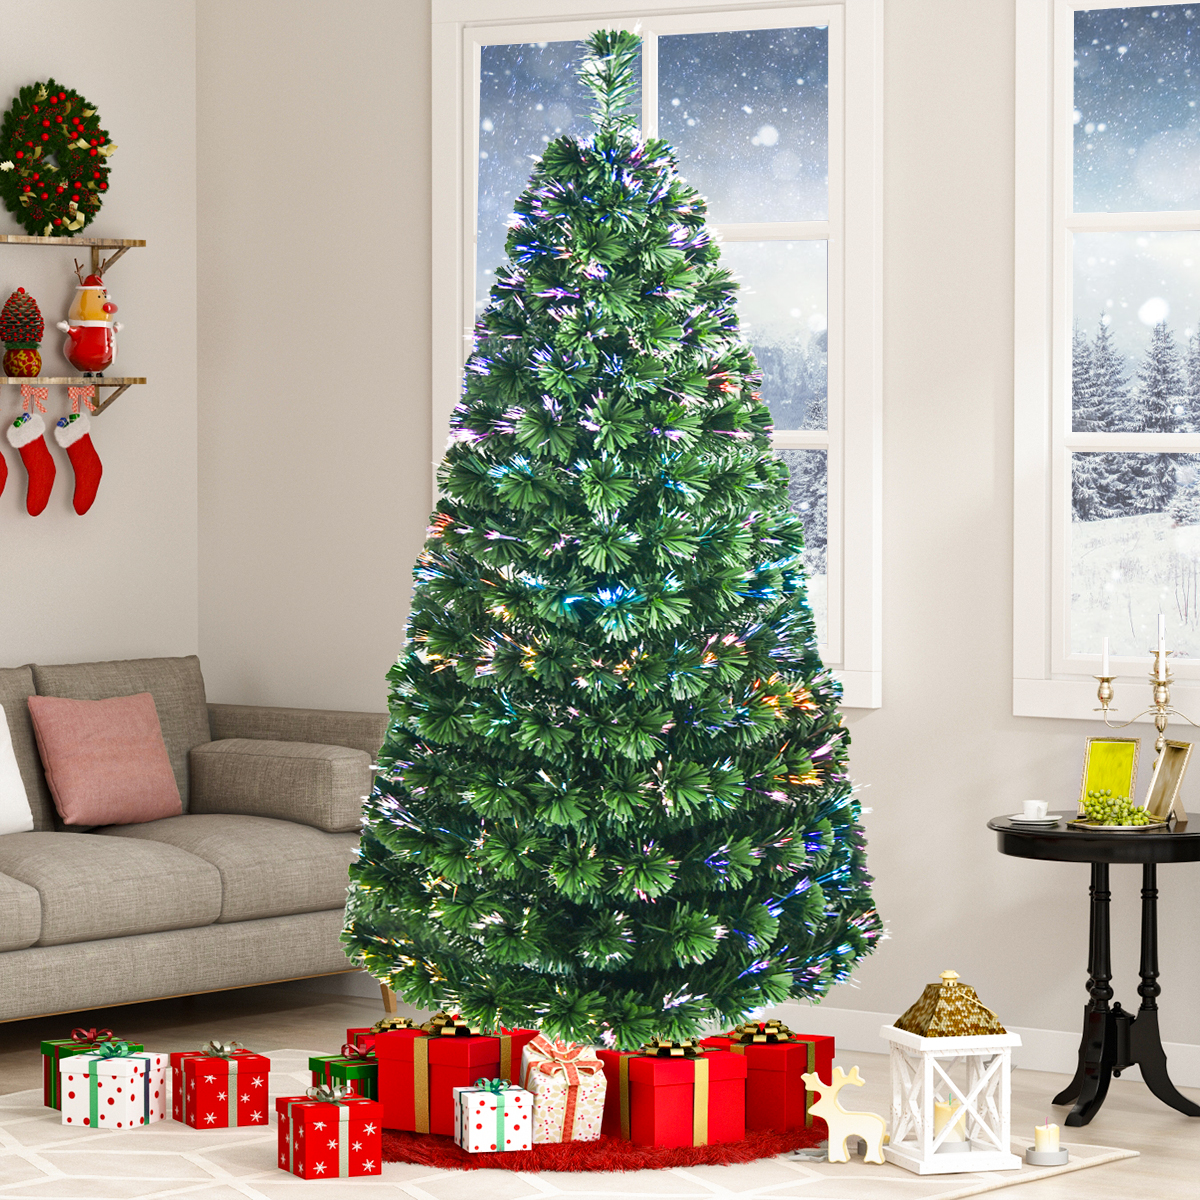 Best Choice Products 7 Fiber Optic Artificial Christmas Pine Tree W 270 Ul Certified Multi Color Lights Led Lights With Star On Top Walmart Com Walmart Com